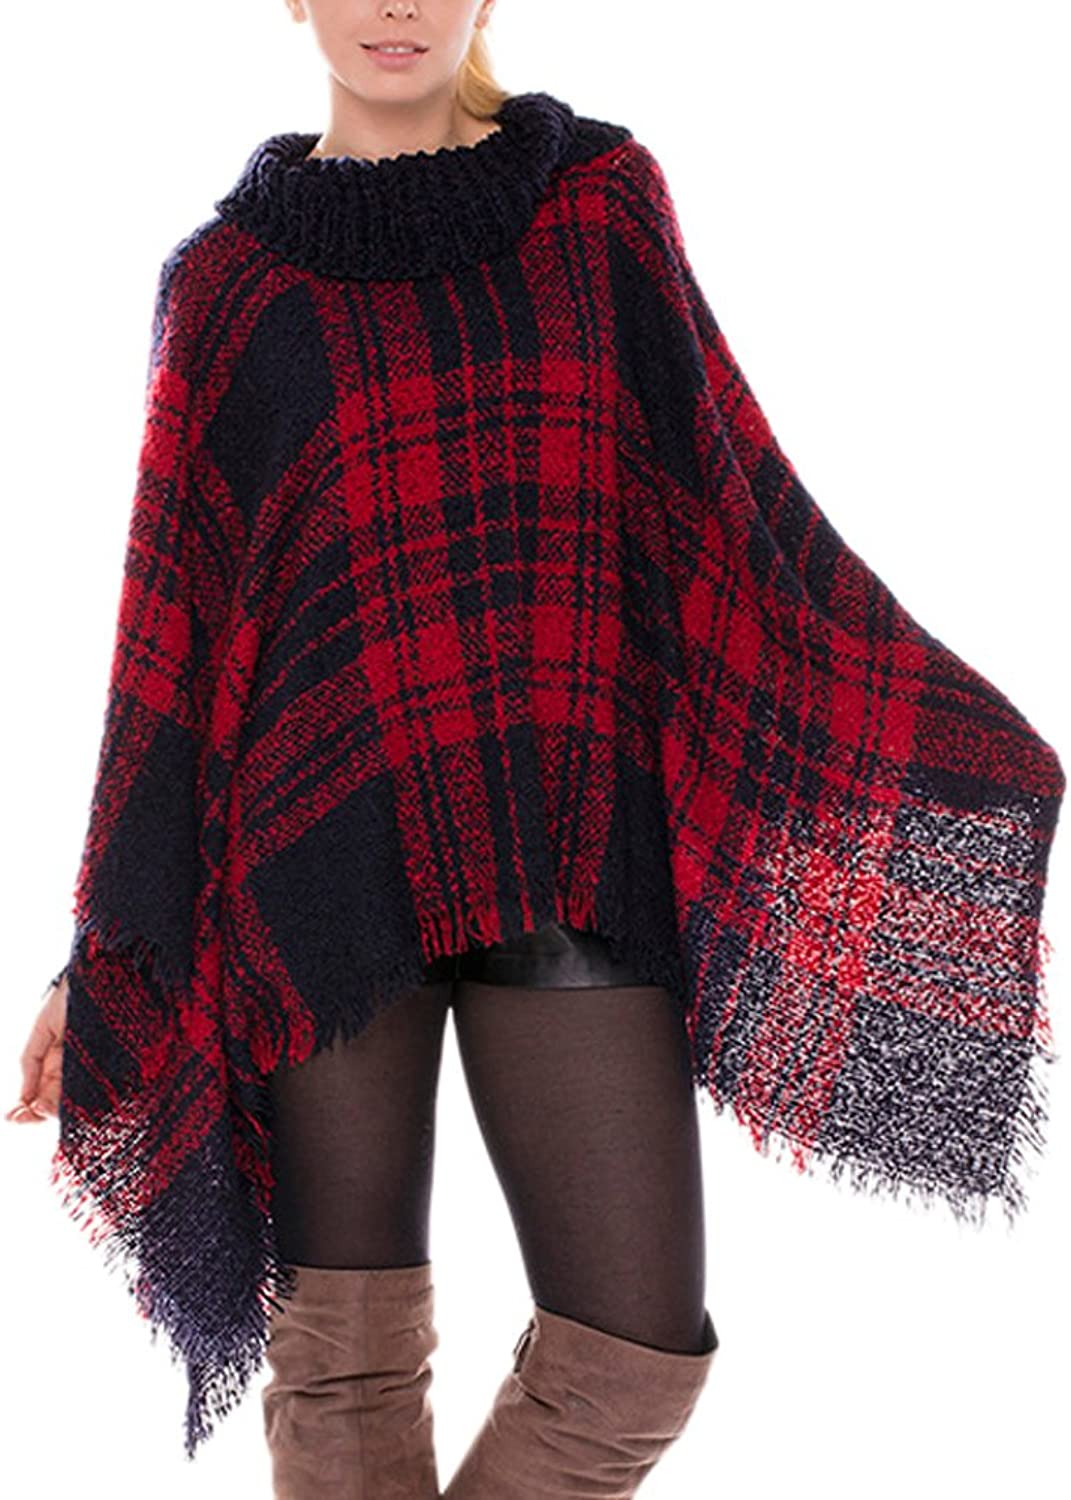 Icegrey Women's Plaid High Collar Knitted Sweater Poncho Shawl Red